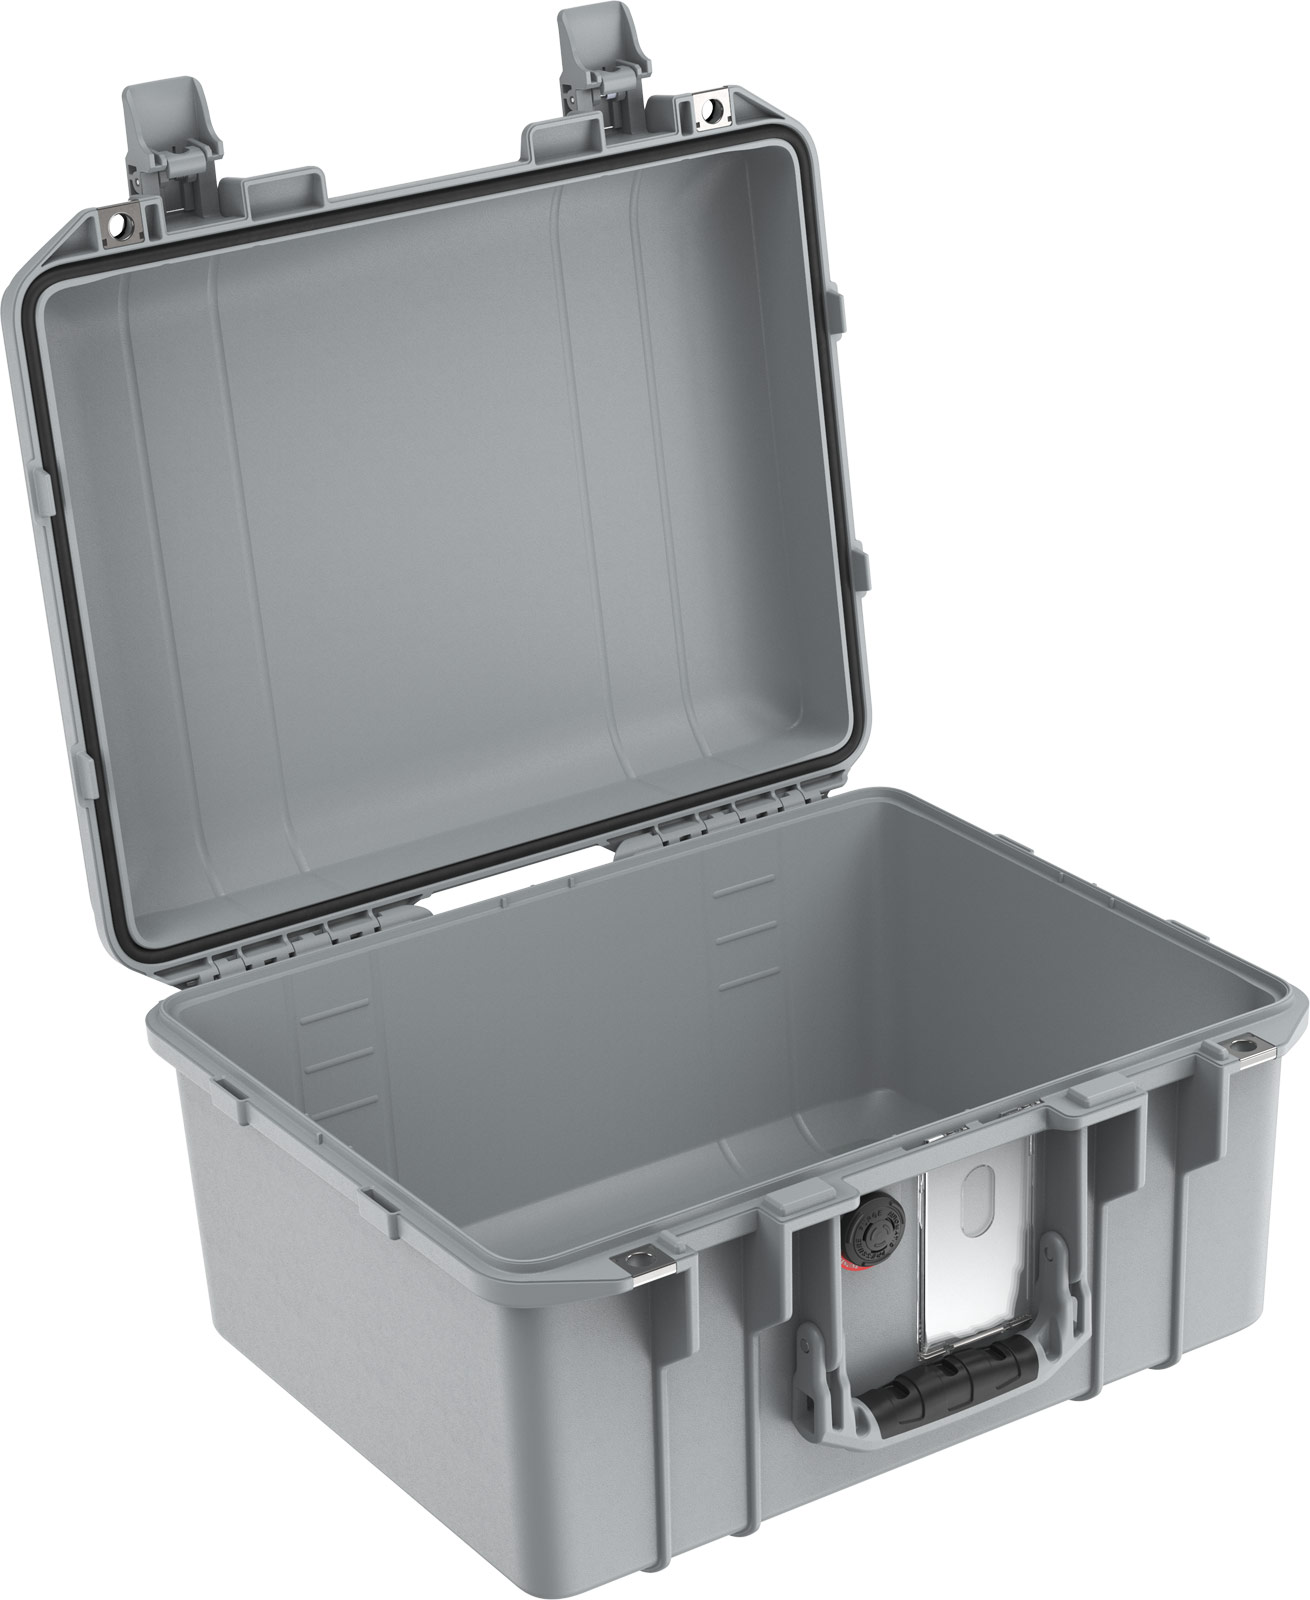 buy pelican air 1507 shop silver airline case